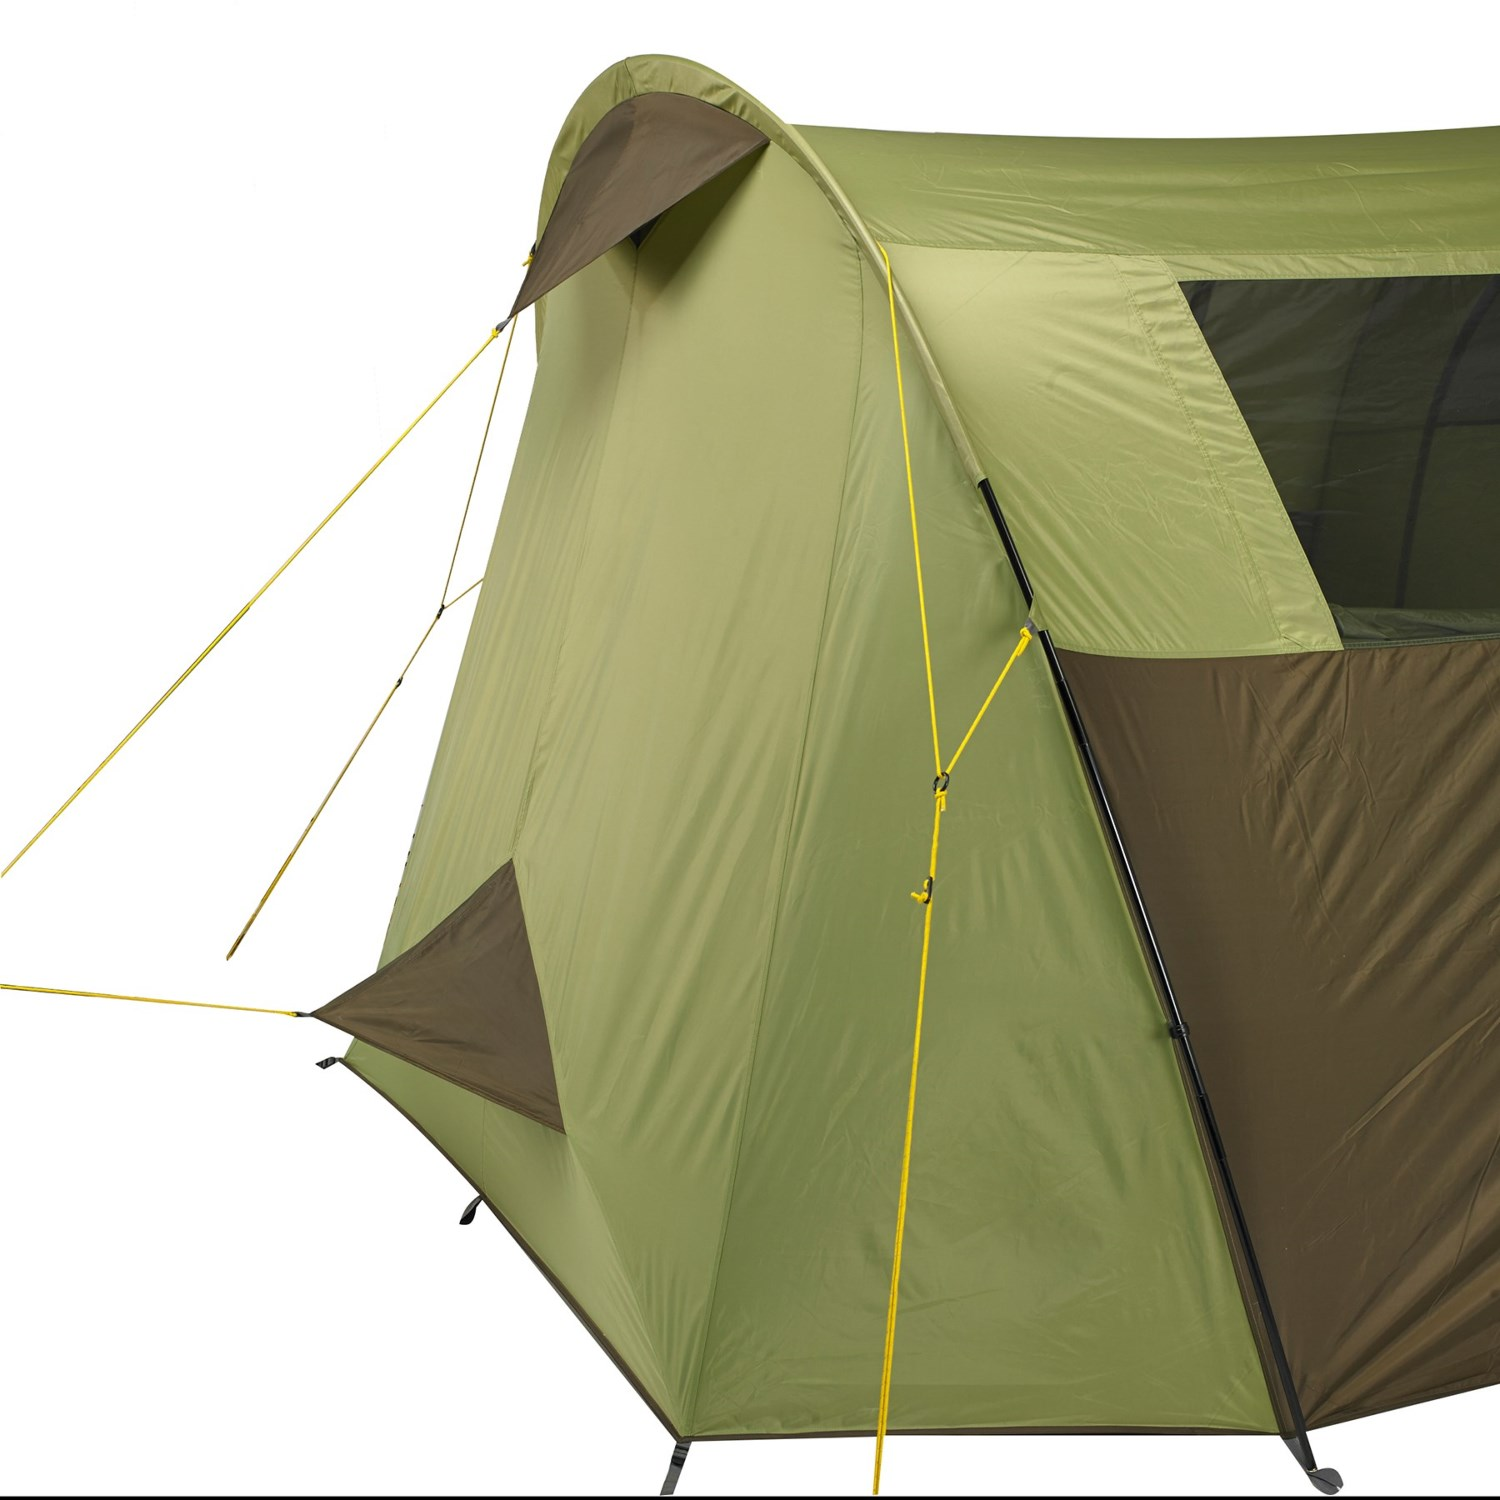 Slumberjack Overland 8 Two-Room Tent - 8-Person 3-Season  sc 1 st  Sierra Trading Post & Slumberjack Overland 8 Two-Room Tent - 8-Person 3-Season - Save 23%